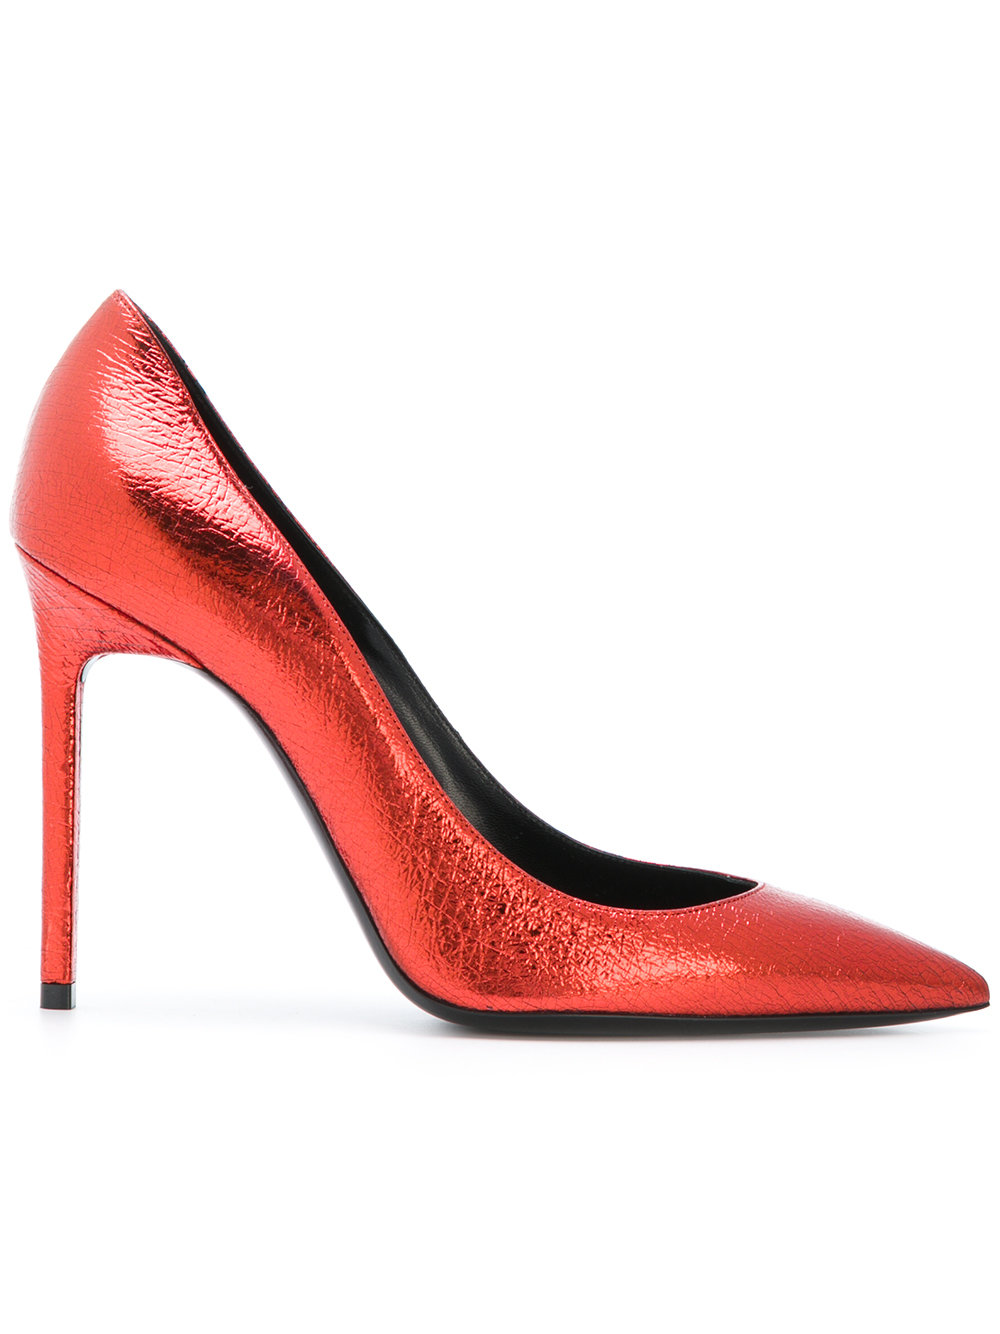 SAINT LAURENT pumps - $695